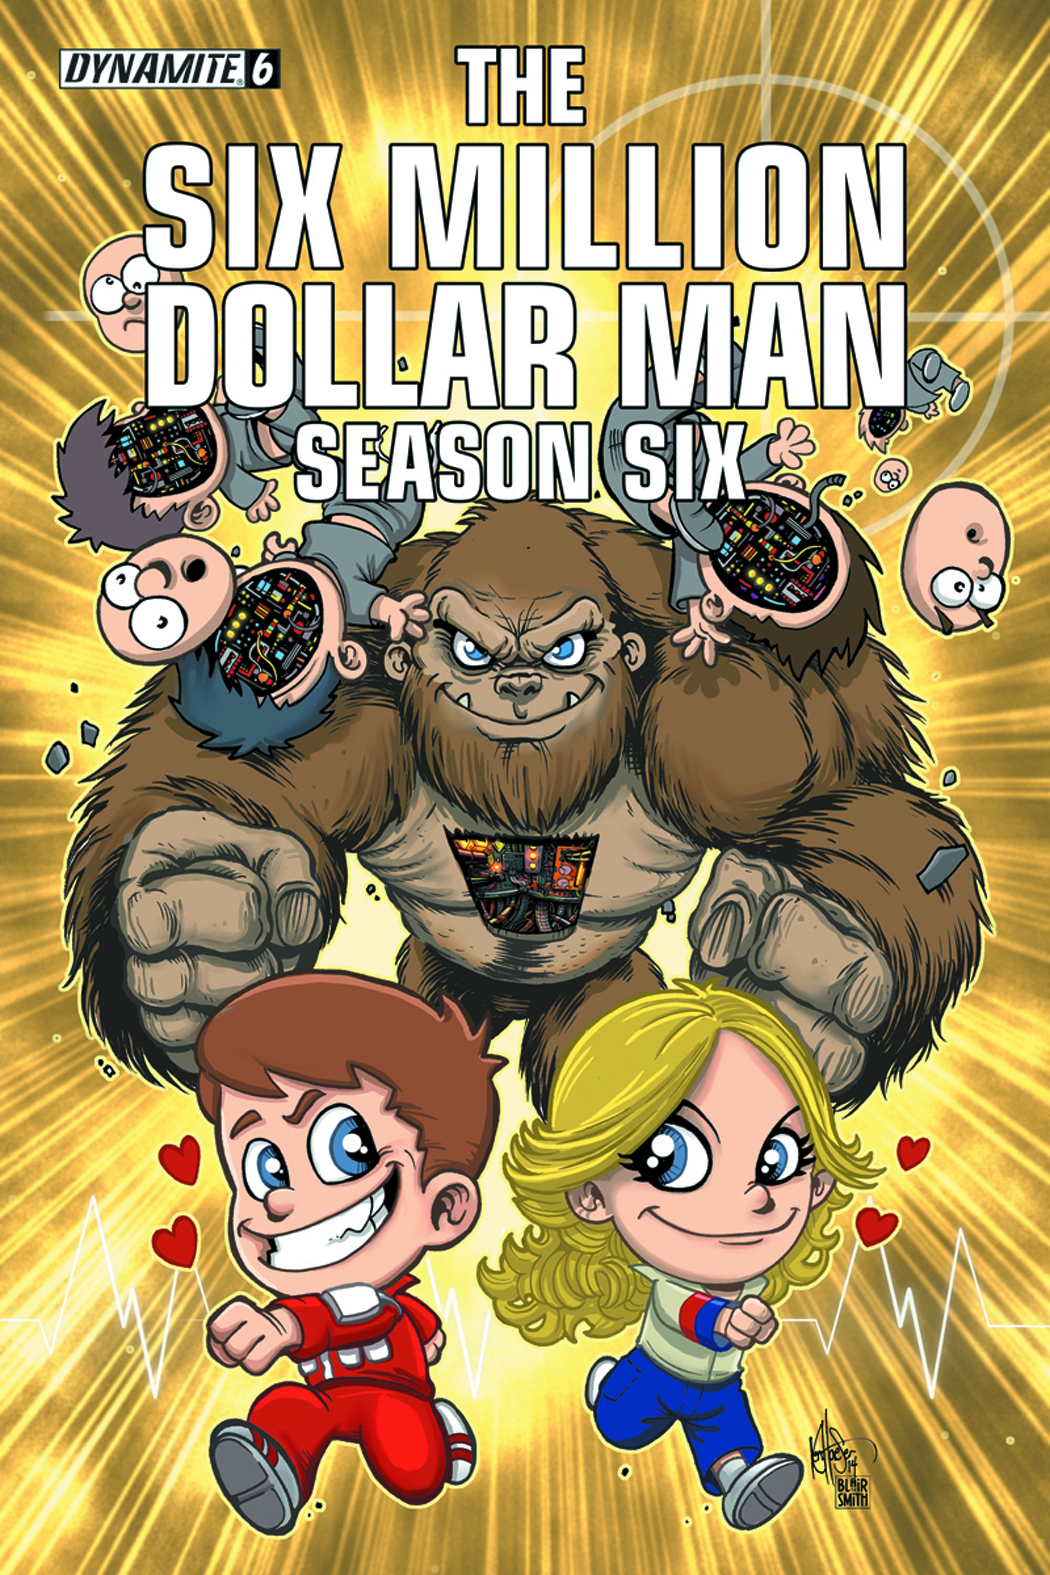 SIX MILLION DOLLAR MAN SEASON 6 #6 HAESER LIL DOLLAR MAN VAR